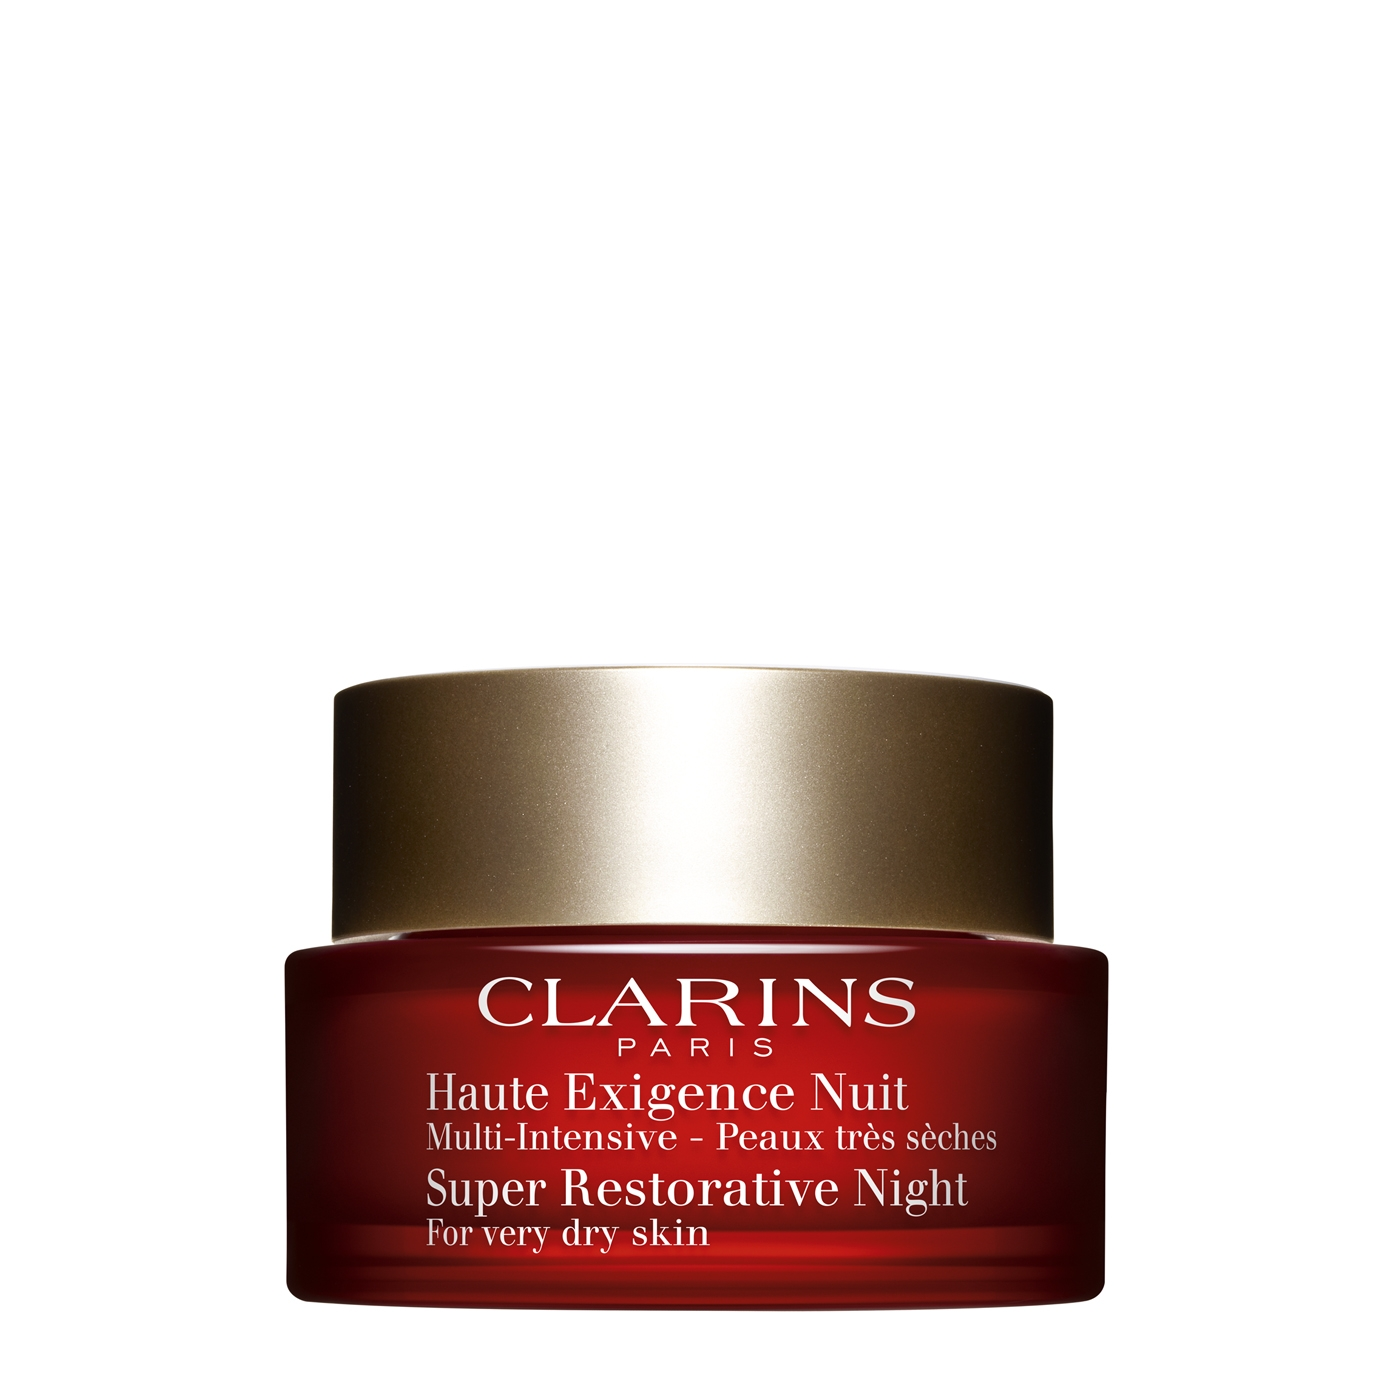 0109810_Clarins night_original_1